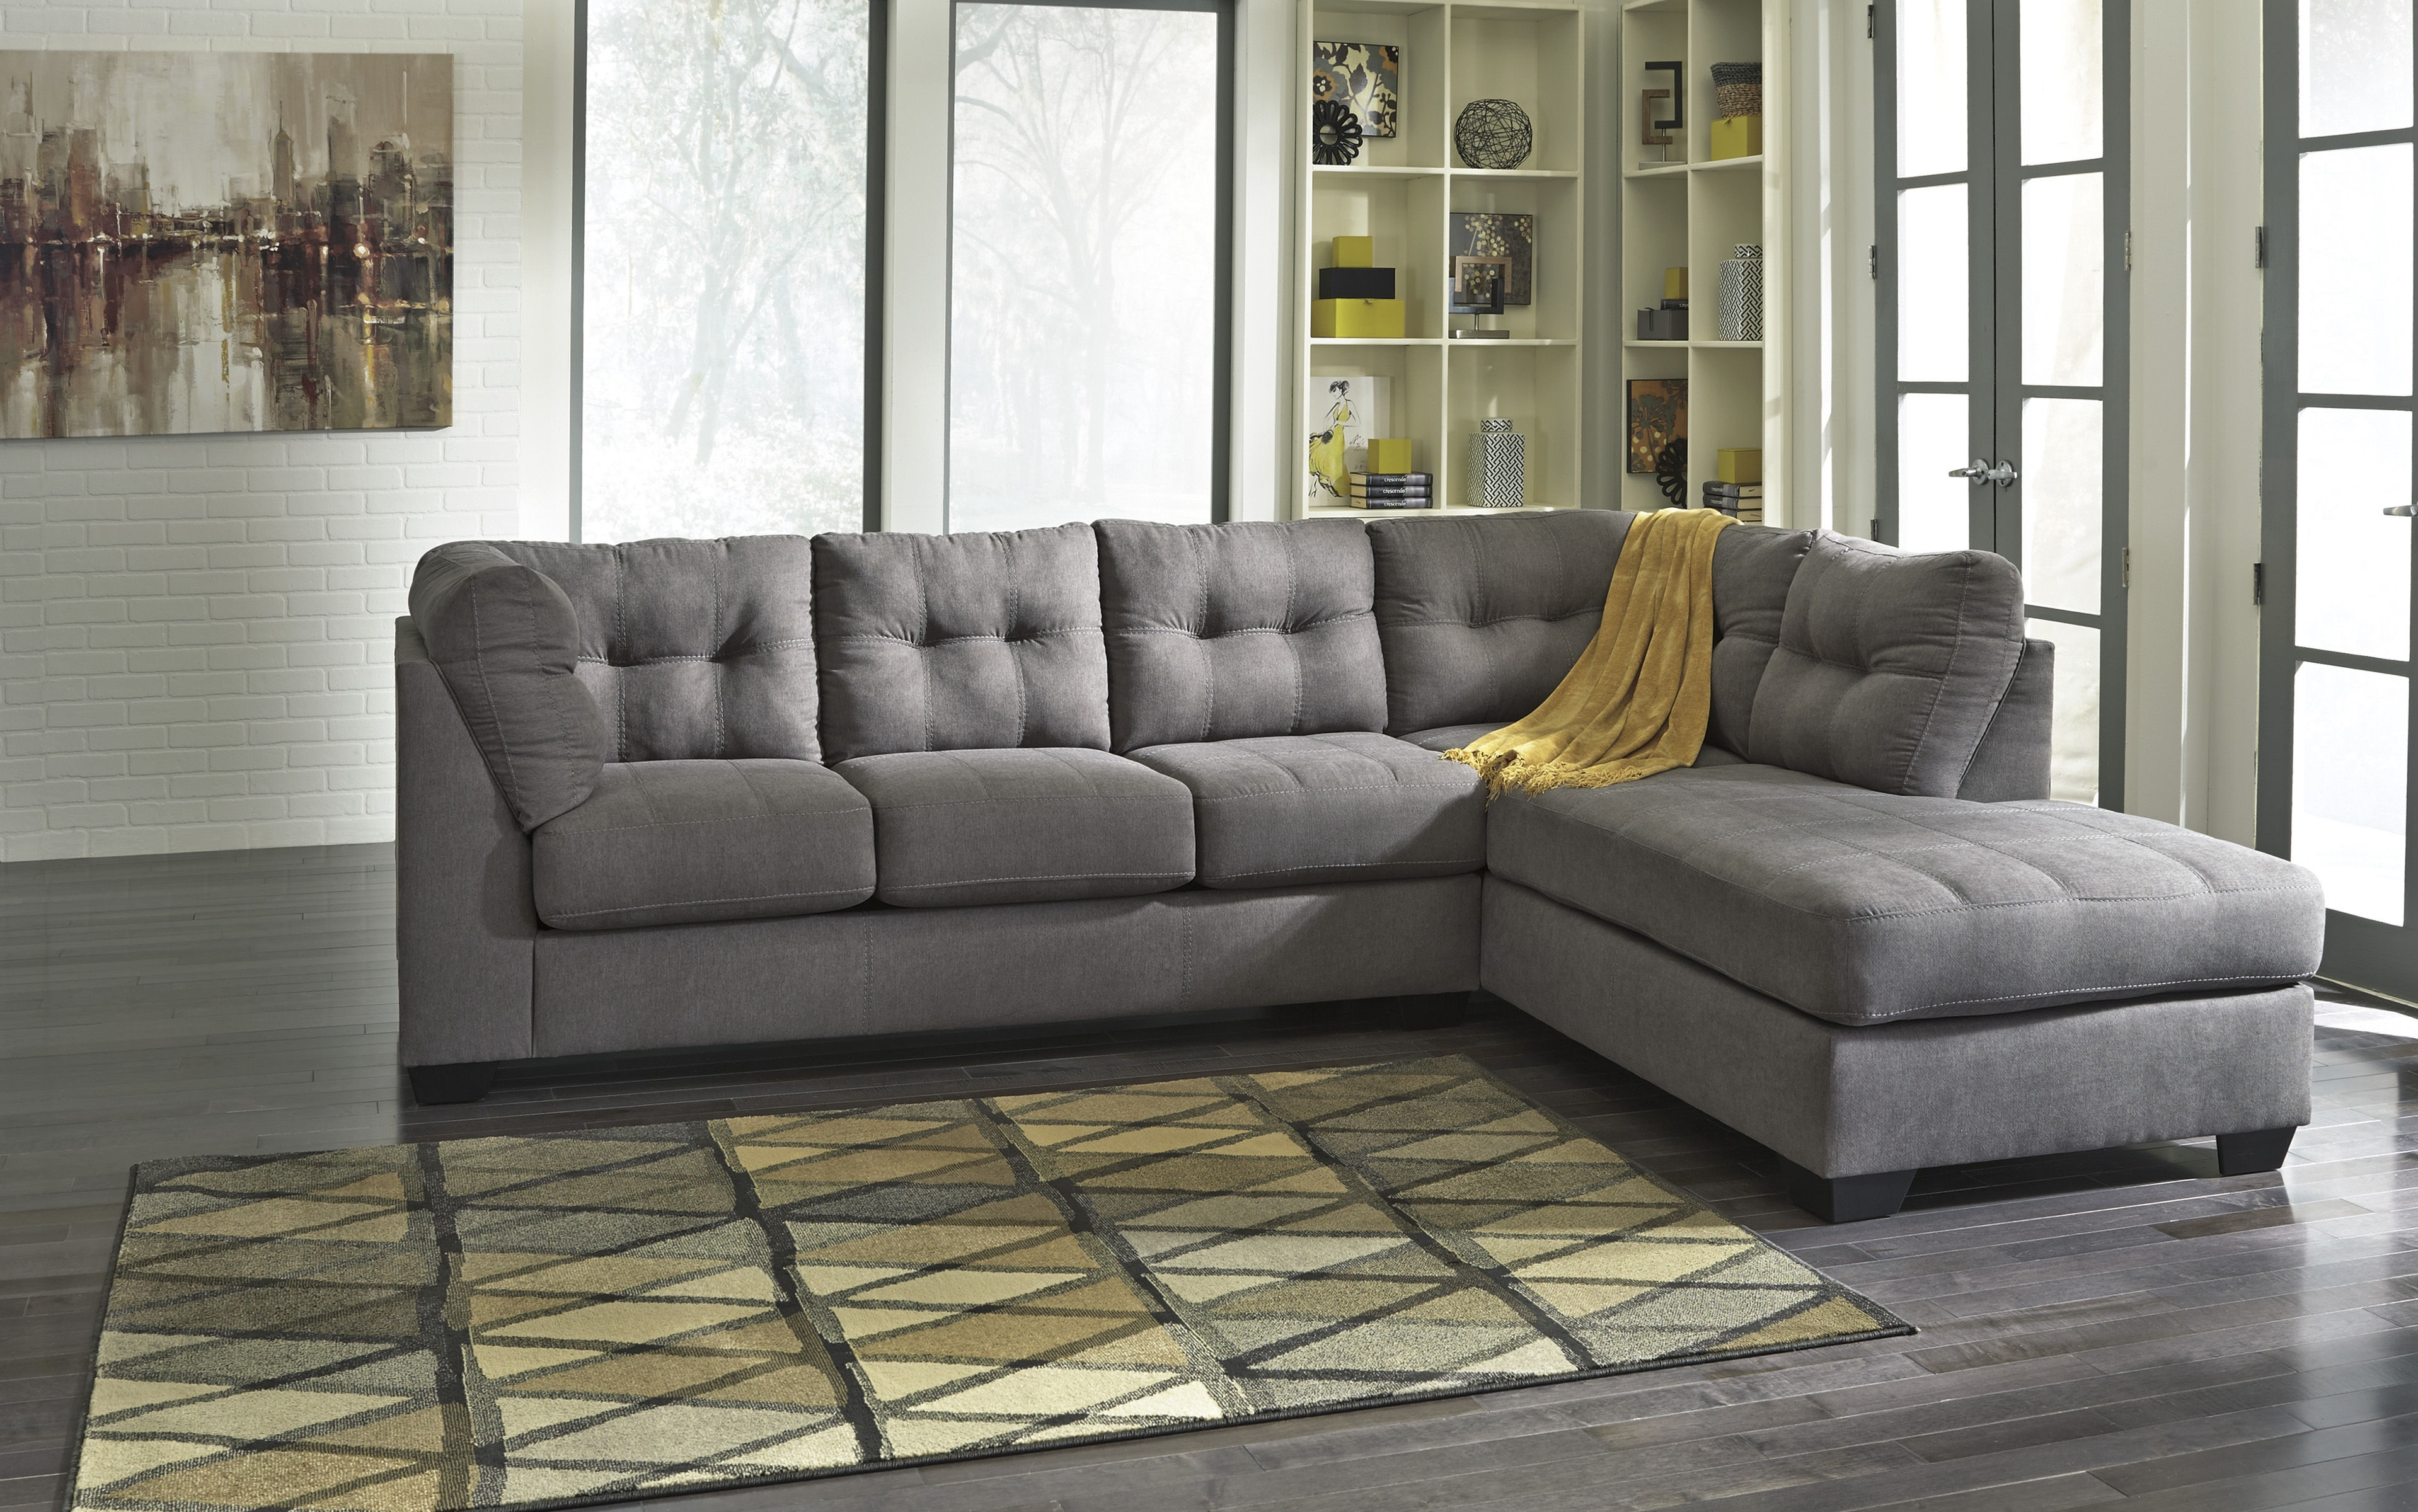 Ashley Furniture Maier Charcoal Raf Chaise Sectional | The Classy Home pertaining to Lucy Dark Grey 2 Piece Sleeper Sectionals With Raf Chaise (Image 5 of 30)